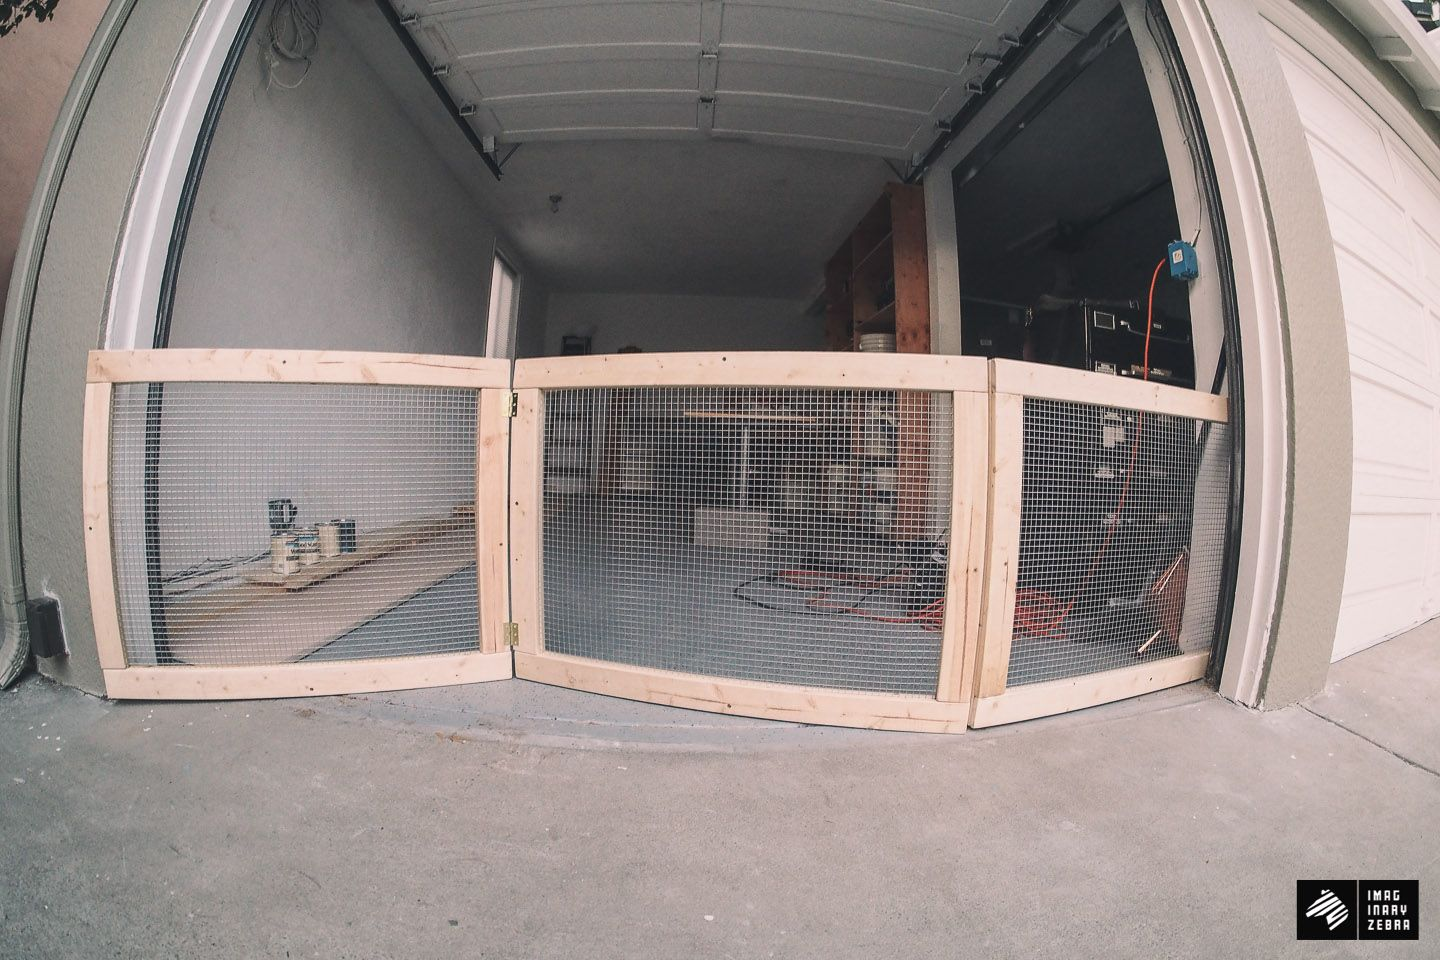 My Man Cave Part 1diy Dog Fence For Garage Doors Imaginary Zebra